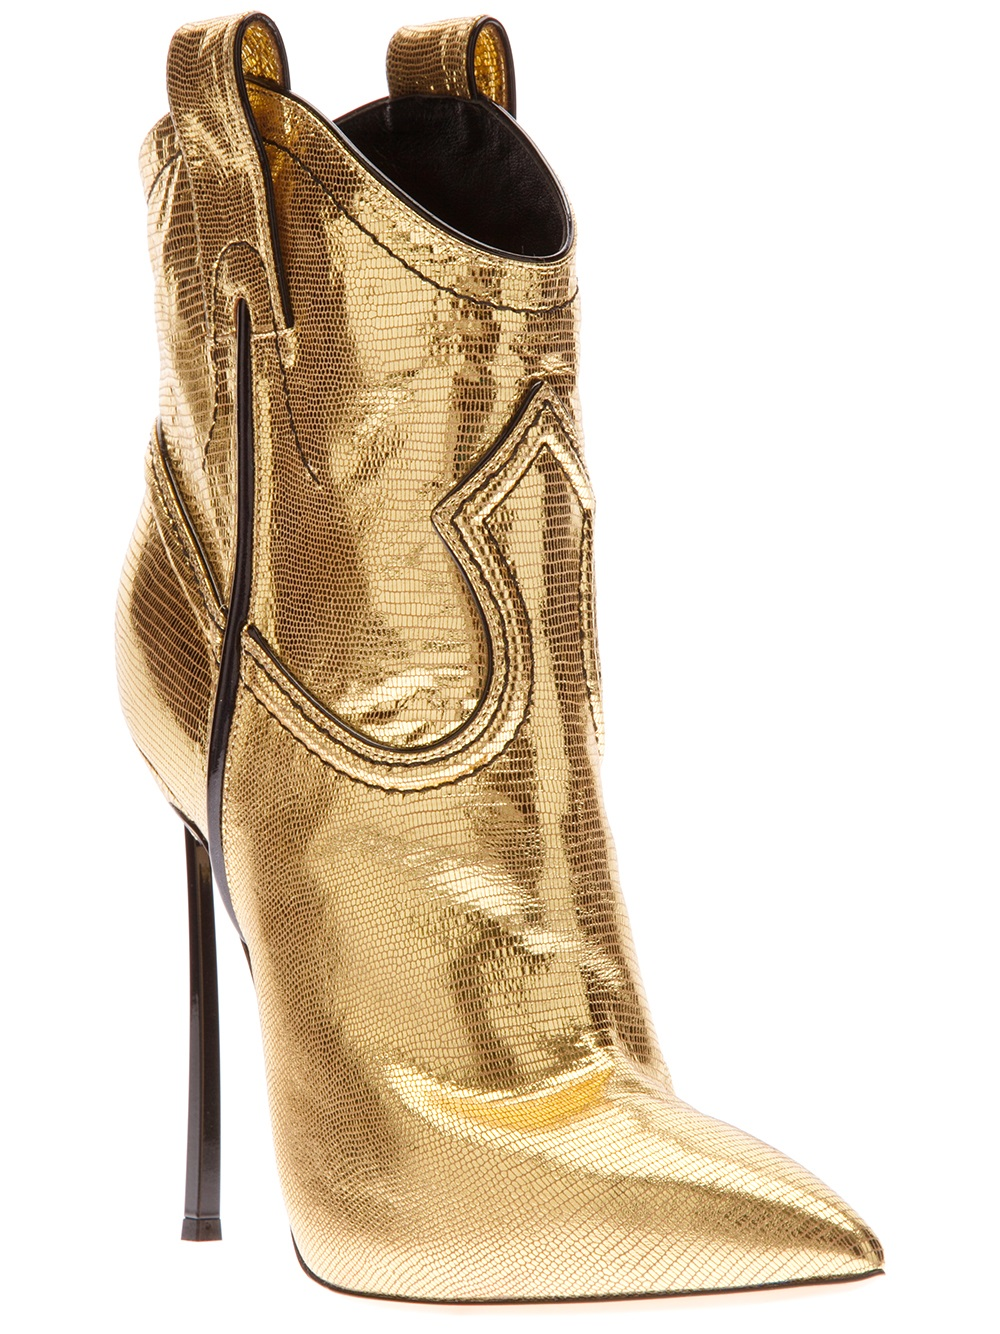 Metallic Gold Boots Women S Shoes